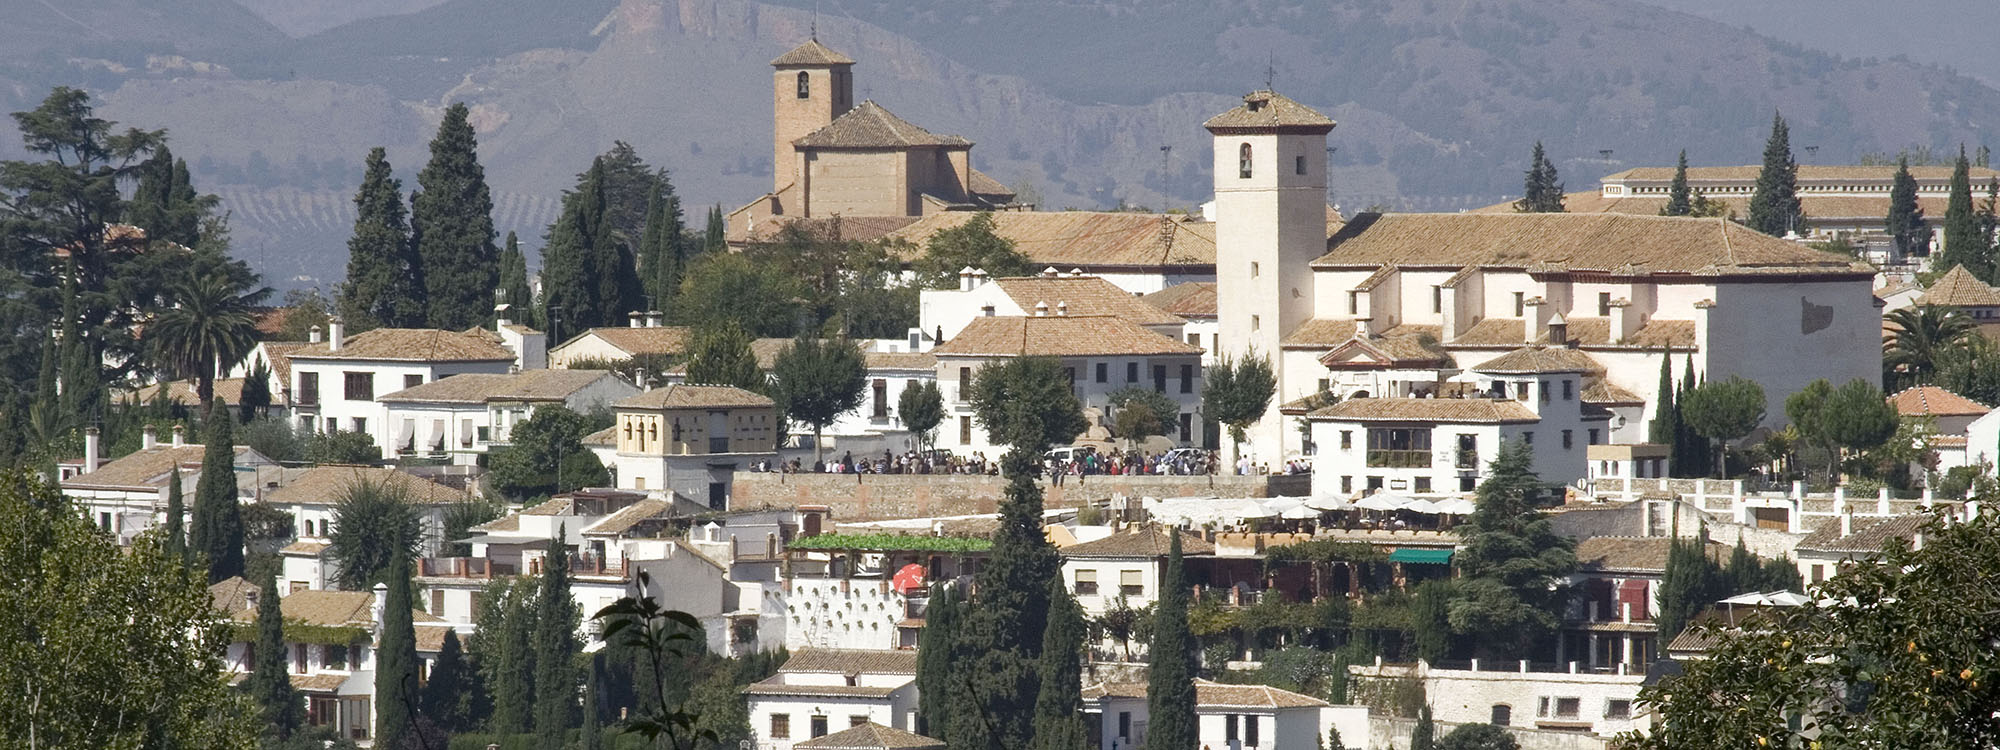 DAY 3: THE HISTORIC CENTER OF GRANADA